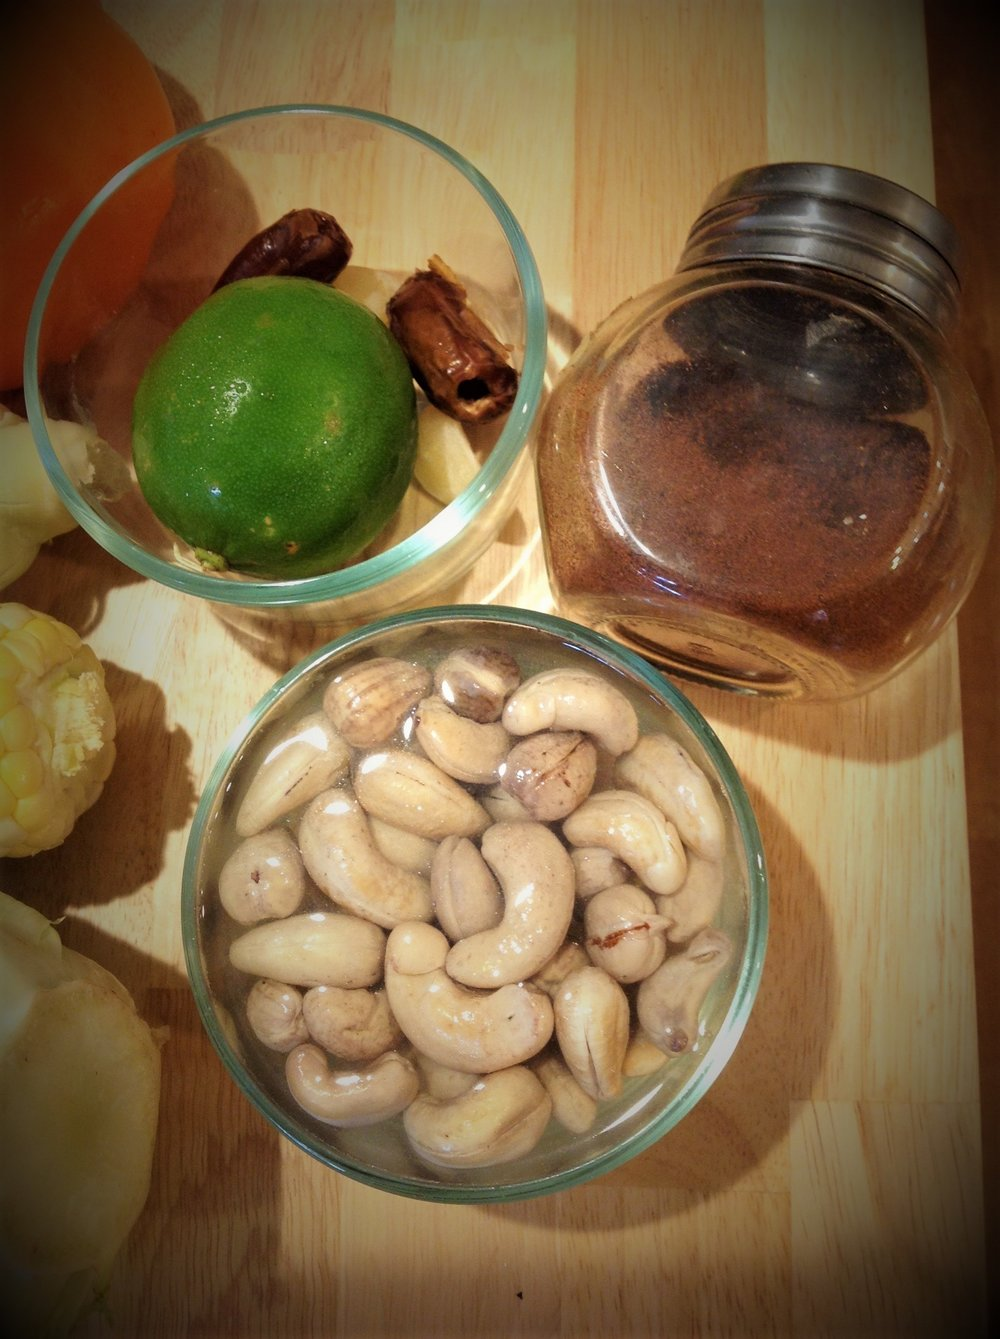 Chef's Tip: Soaking the cashews overnight helps soften them. If you find you don't remember to do this, you can substitute with cashew butter. For ¾ cup whole cashews, you'll need about ½ cup of cashew butter.